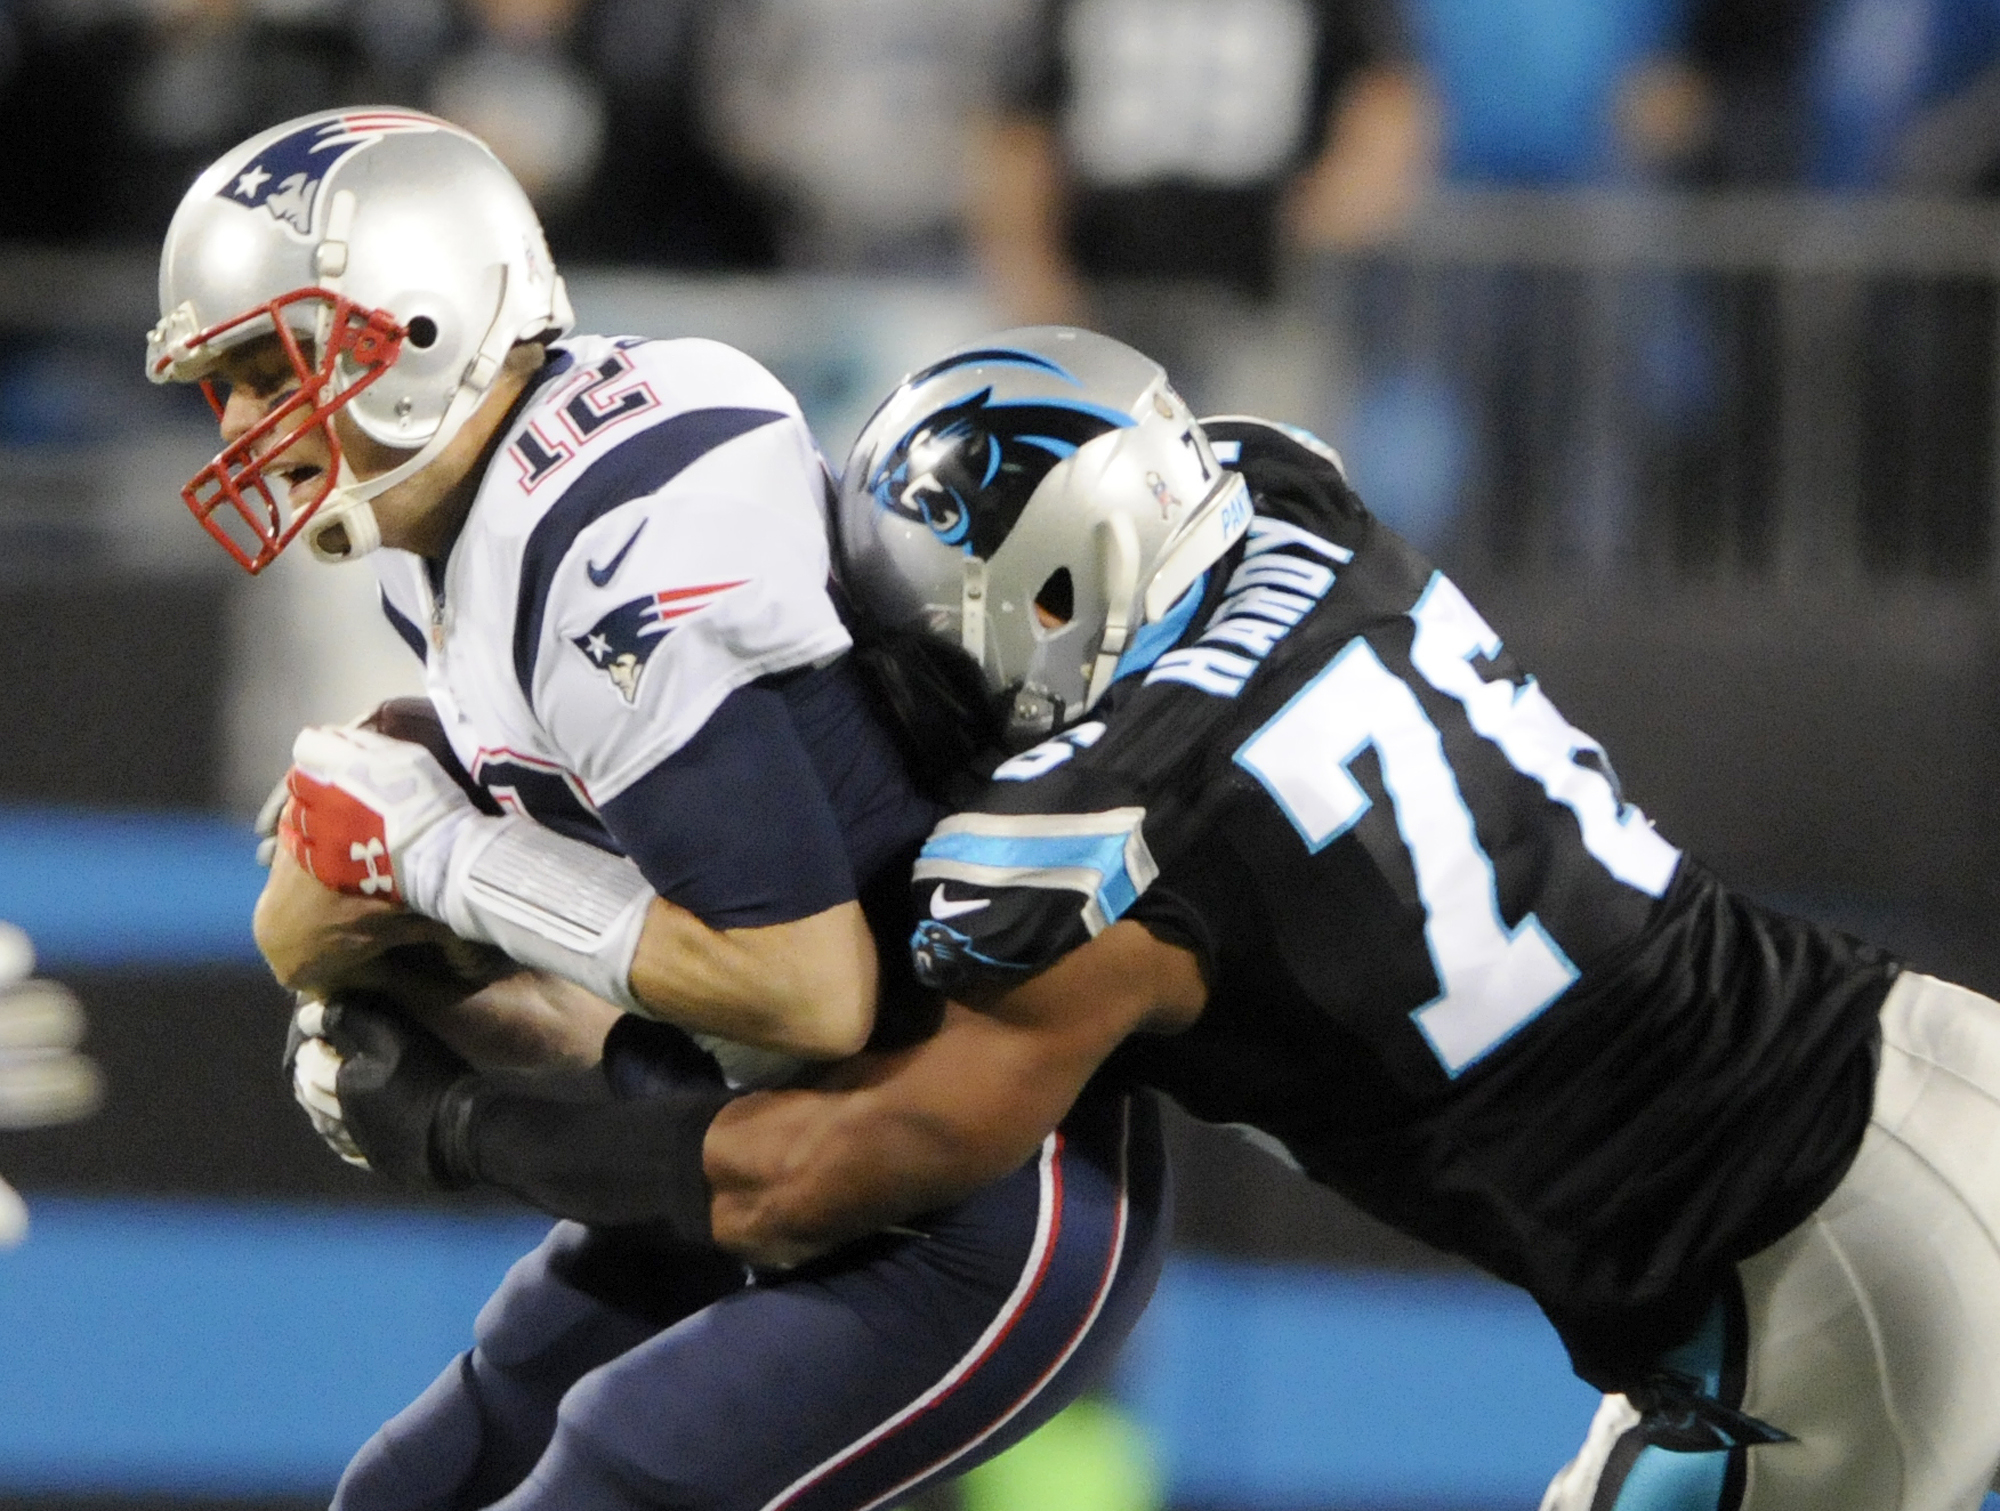 FILE - In this Nov. 18, 2013, file photo, New England Patriots' Tom Brady (12) is sacked by Carolina Panthers' Greg Hardy (76) during the first half of an NFL football game in Charlotte, N.C. Hardy was involved in a high-profile domestic violence case in